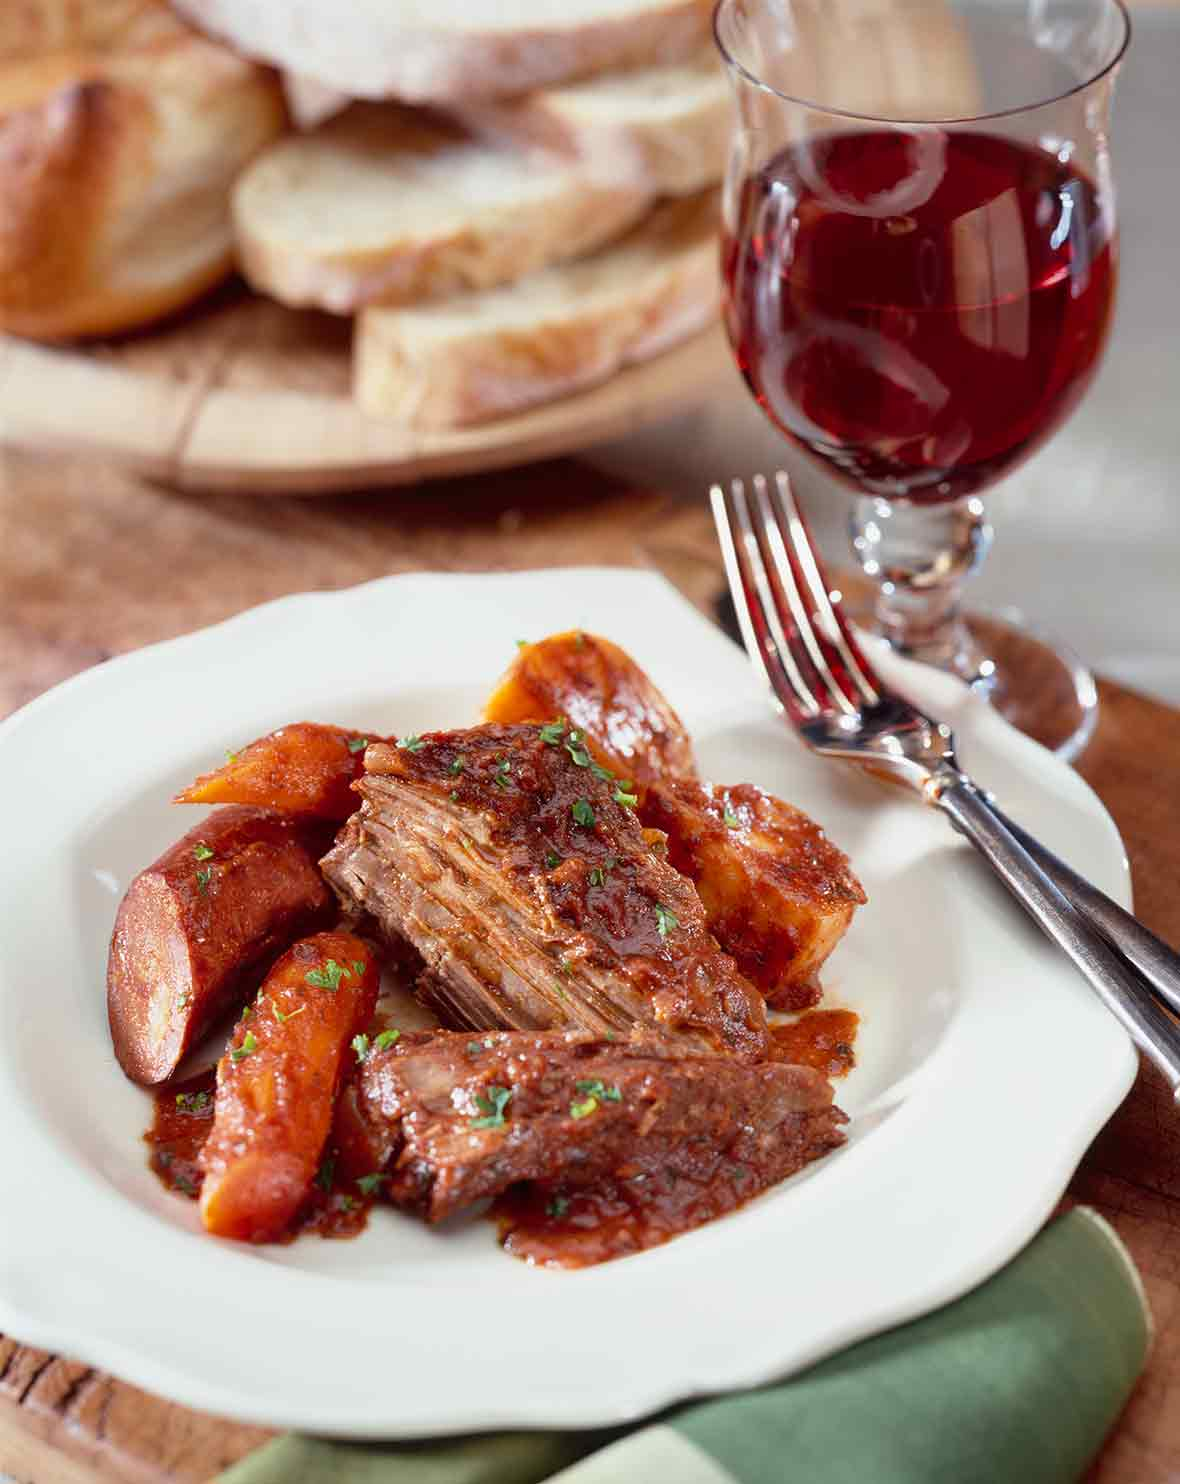 A white bowl with carne assada--braised beef with carrots, potatoes, and Portuguese sausage, chouriço